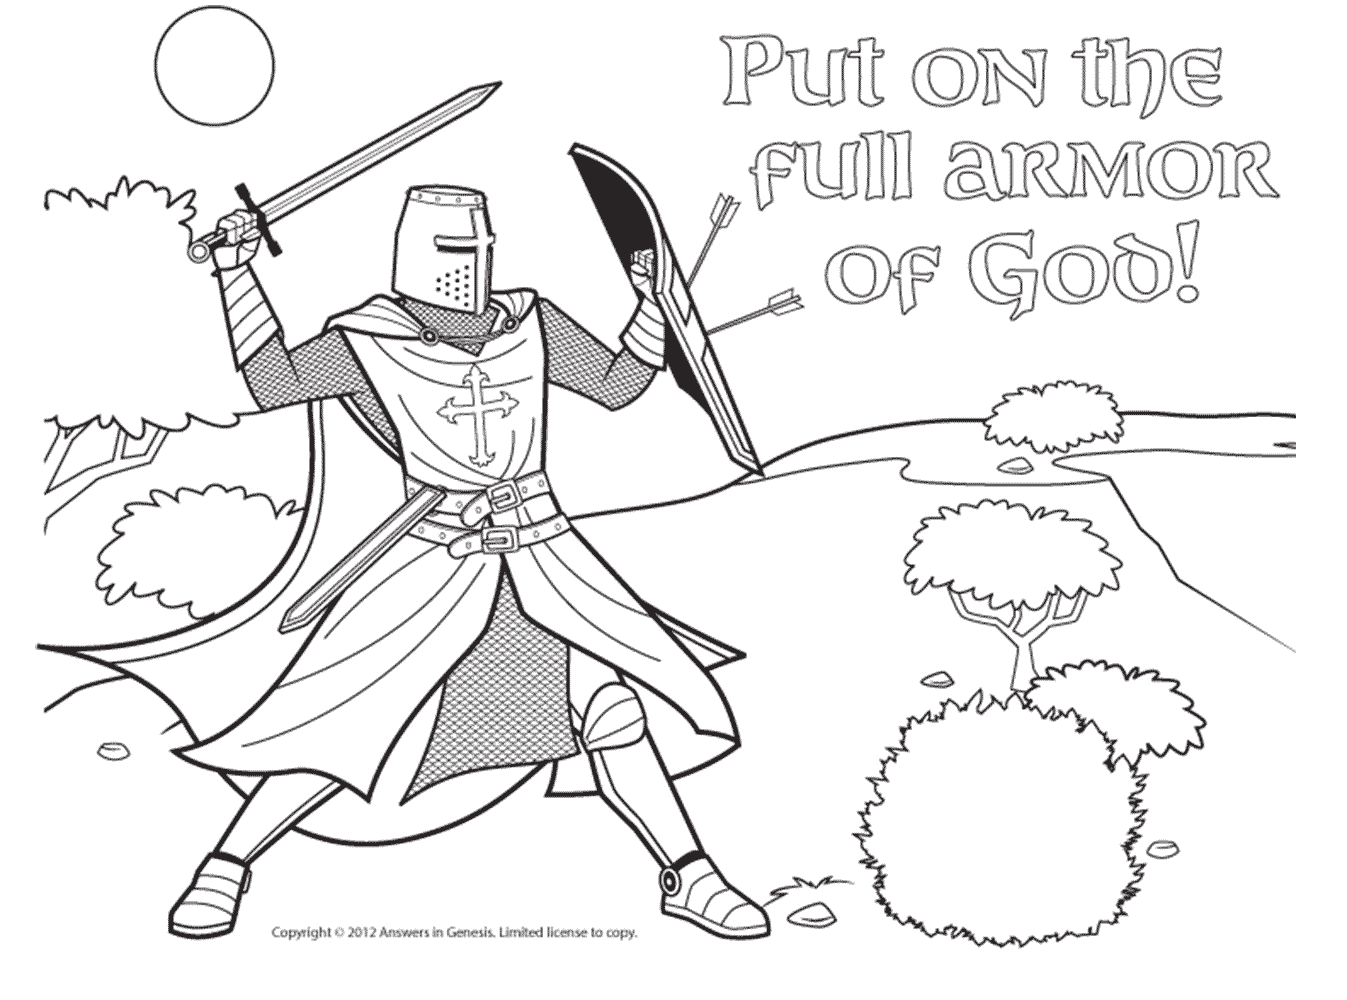 Charmant Coloring Pages Free Coloring Pages Of Armor Of God For Kids Armor Of God  Coloring Pages Lds Armor Of God Coloring Pages Heavenly Armor Of God For  Kids ...